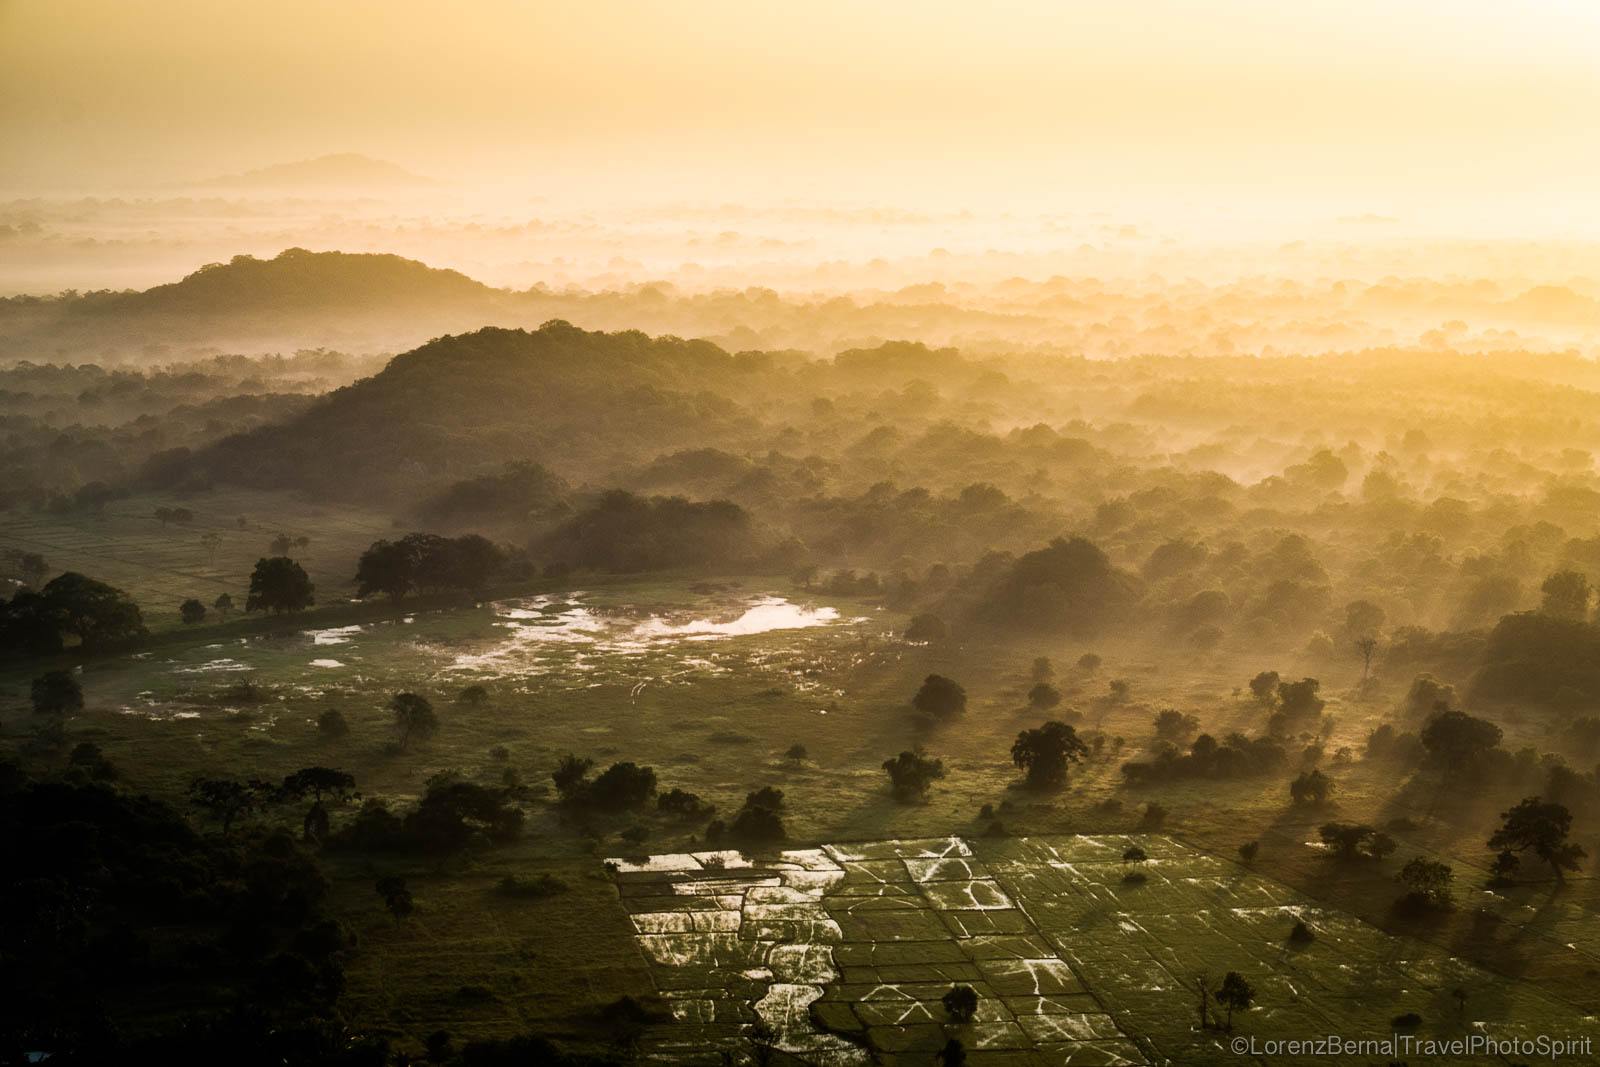 Sunrise on Mihintale surrounding valley - A Sri Lanka travel photography by Lorenz Berna